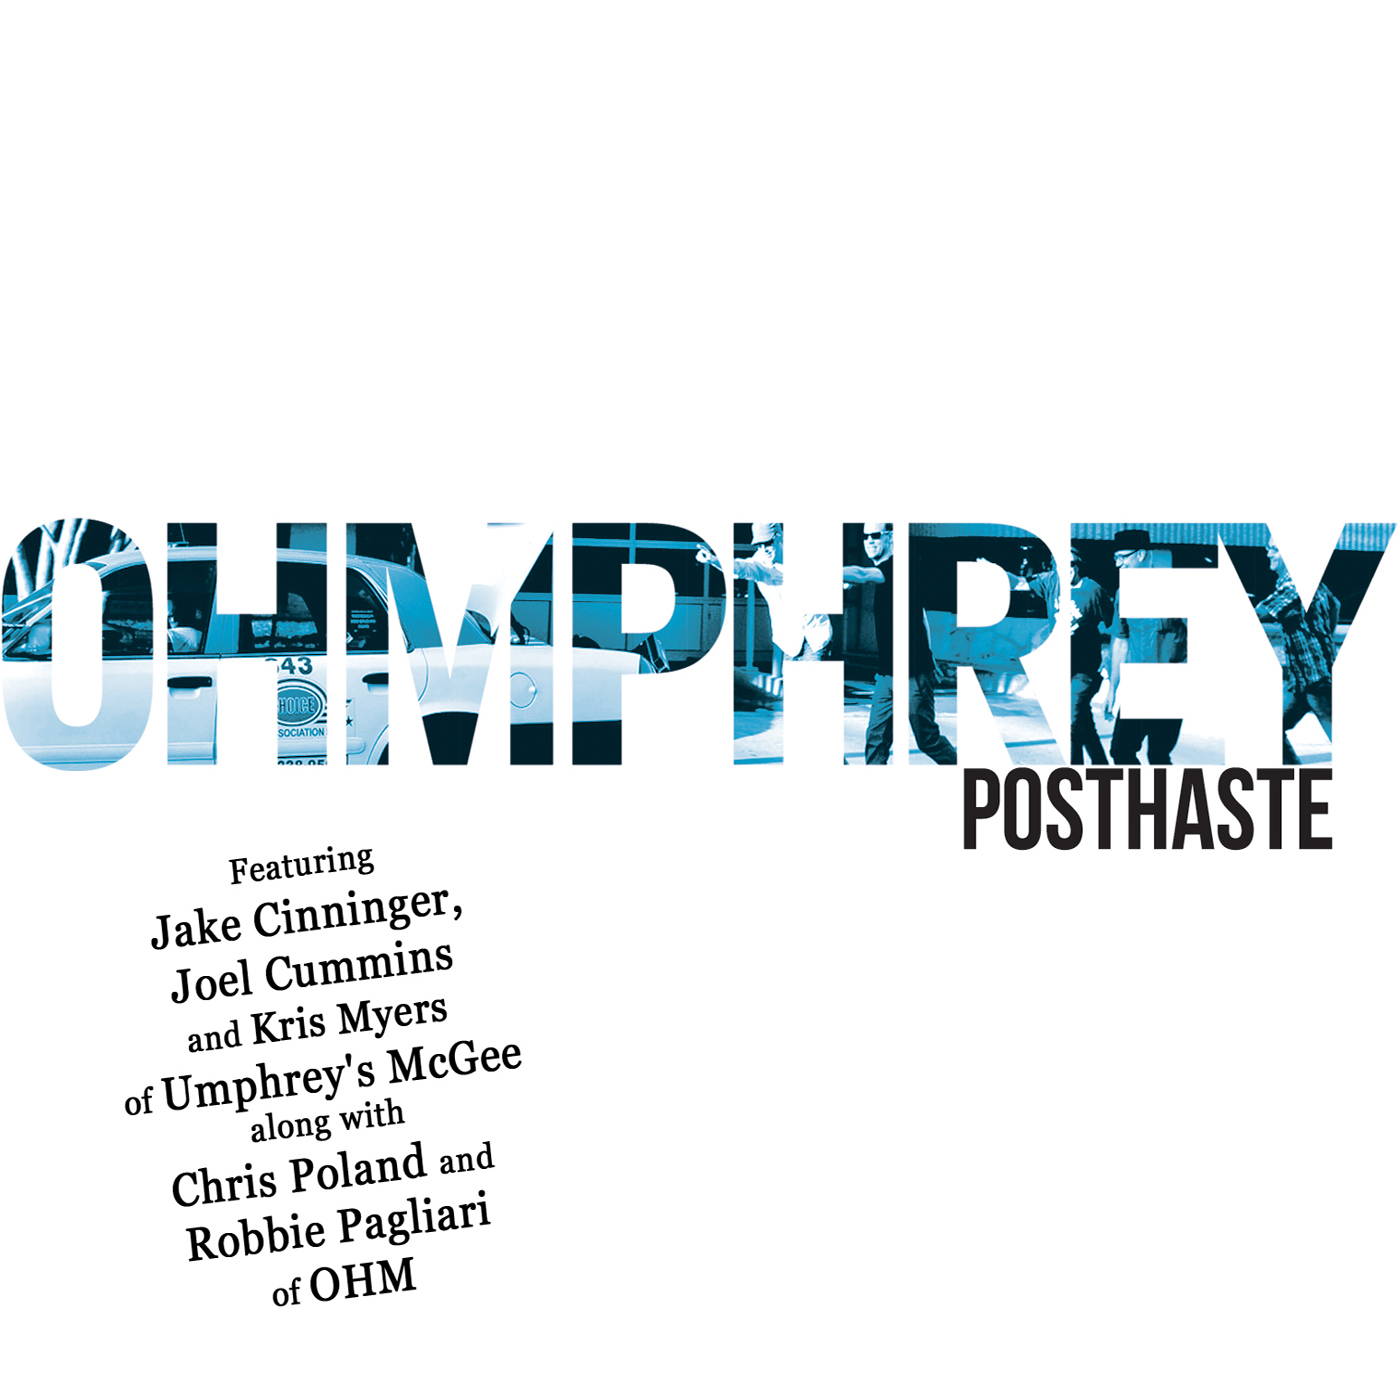 OHMphrey – Posthaste Review